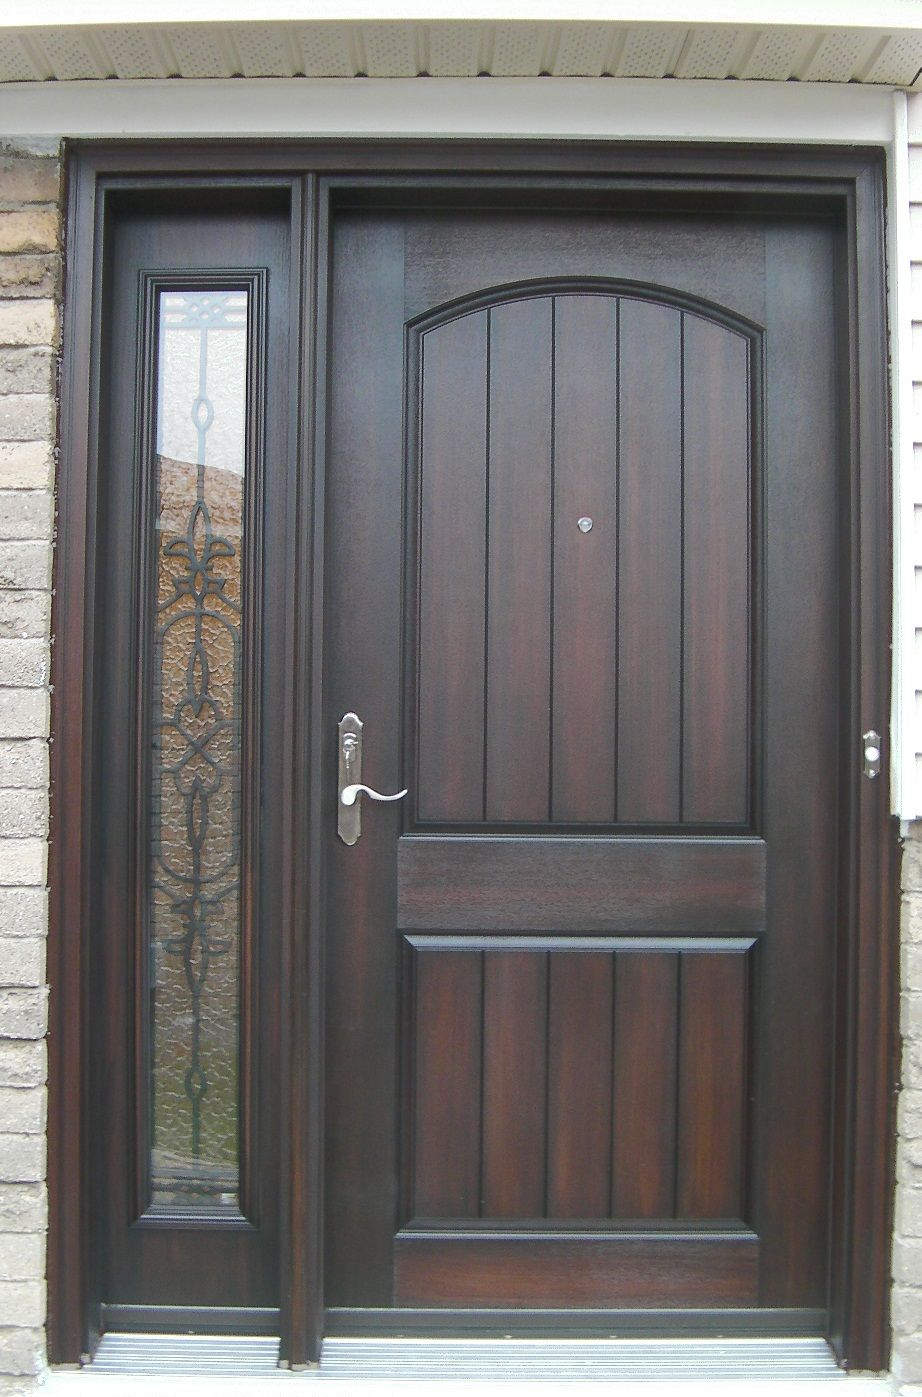 Rustic fiberglass exterior doors - Cambered Two Panel Plank Rustic Fiberglass Door With Wrought Iron Sidelite In A Light Walnut Stain